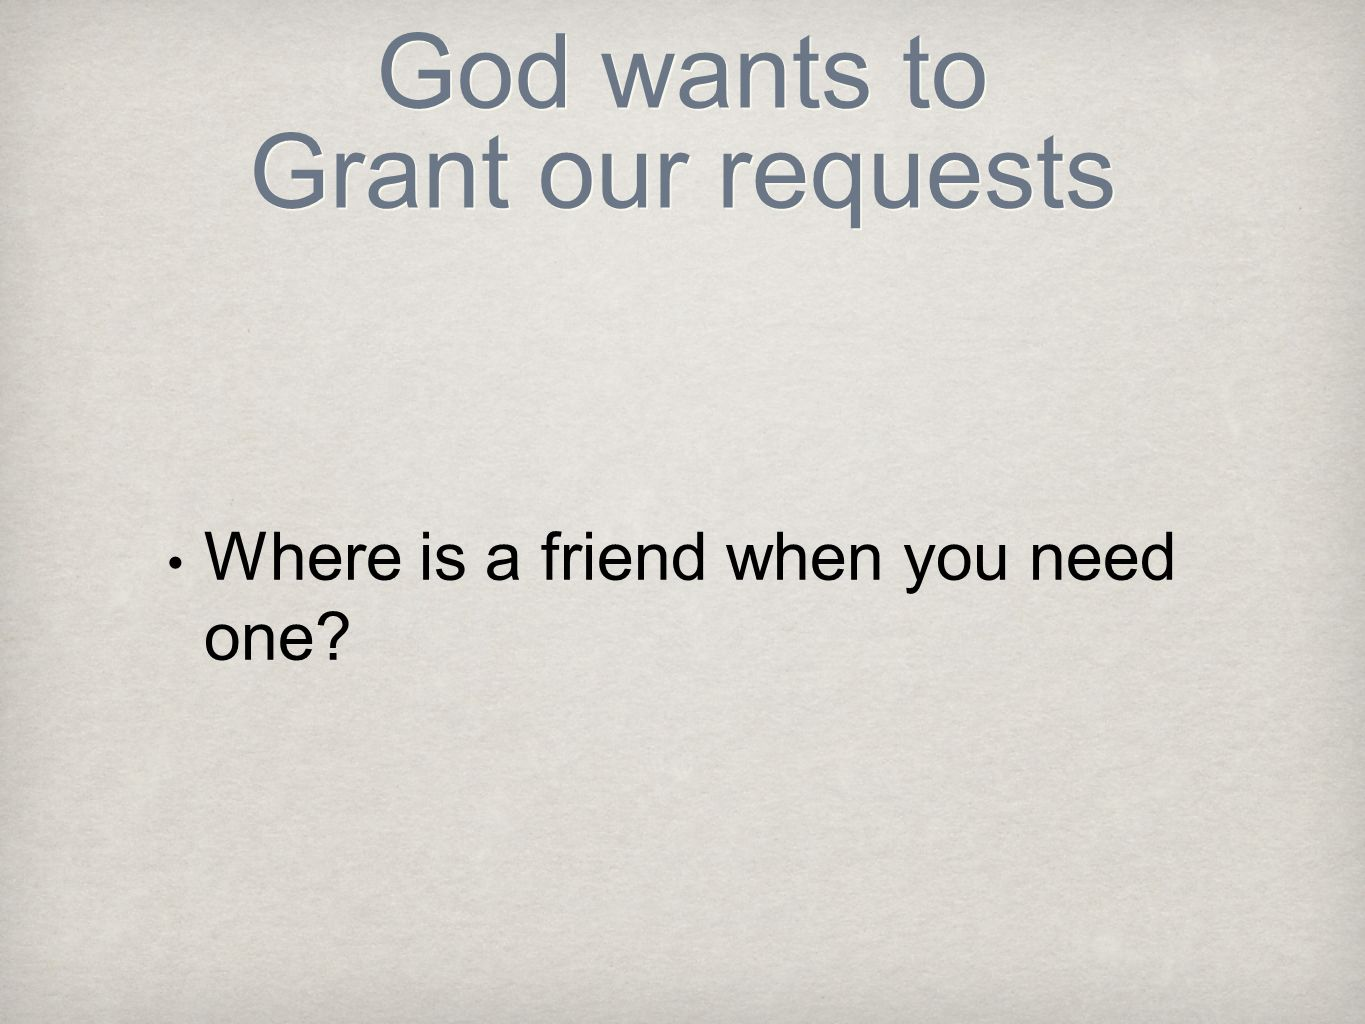 God wants to Grant our requests